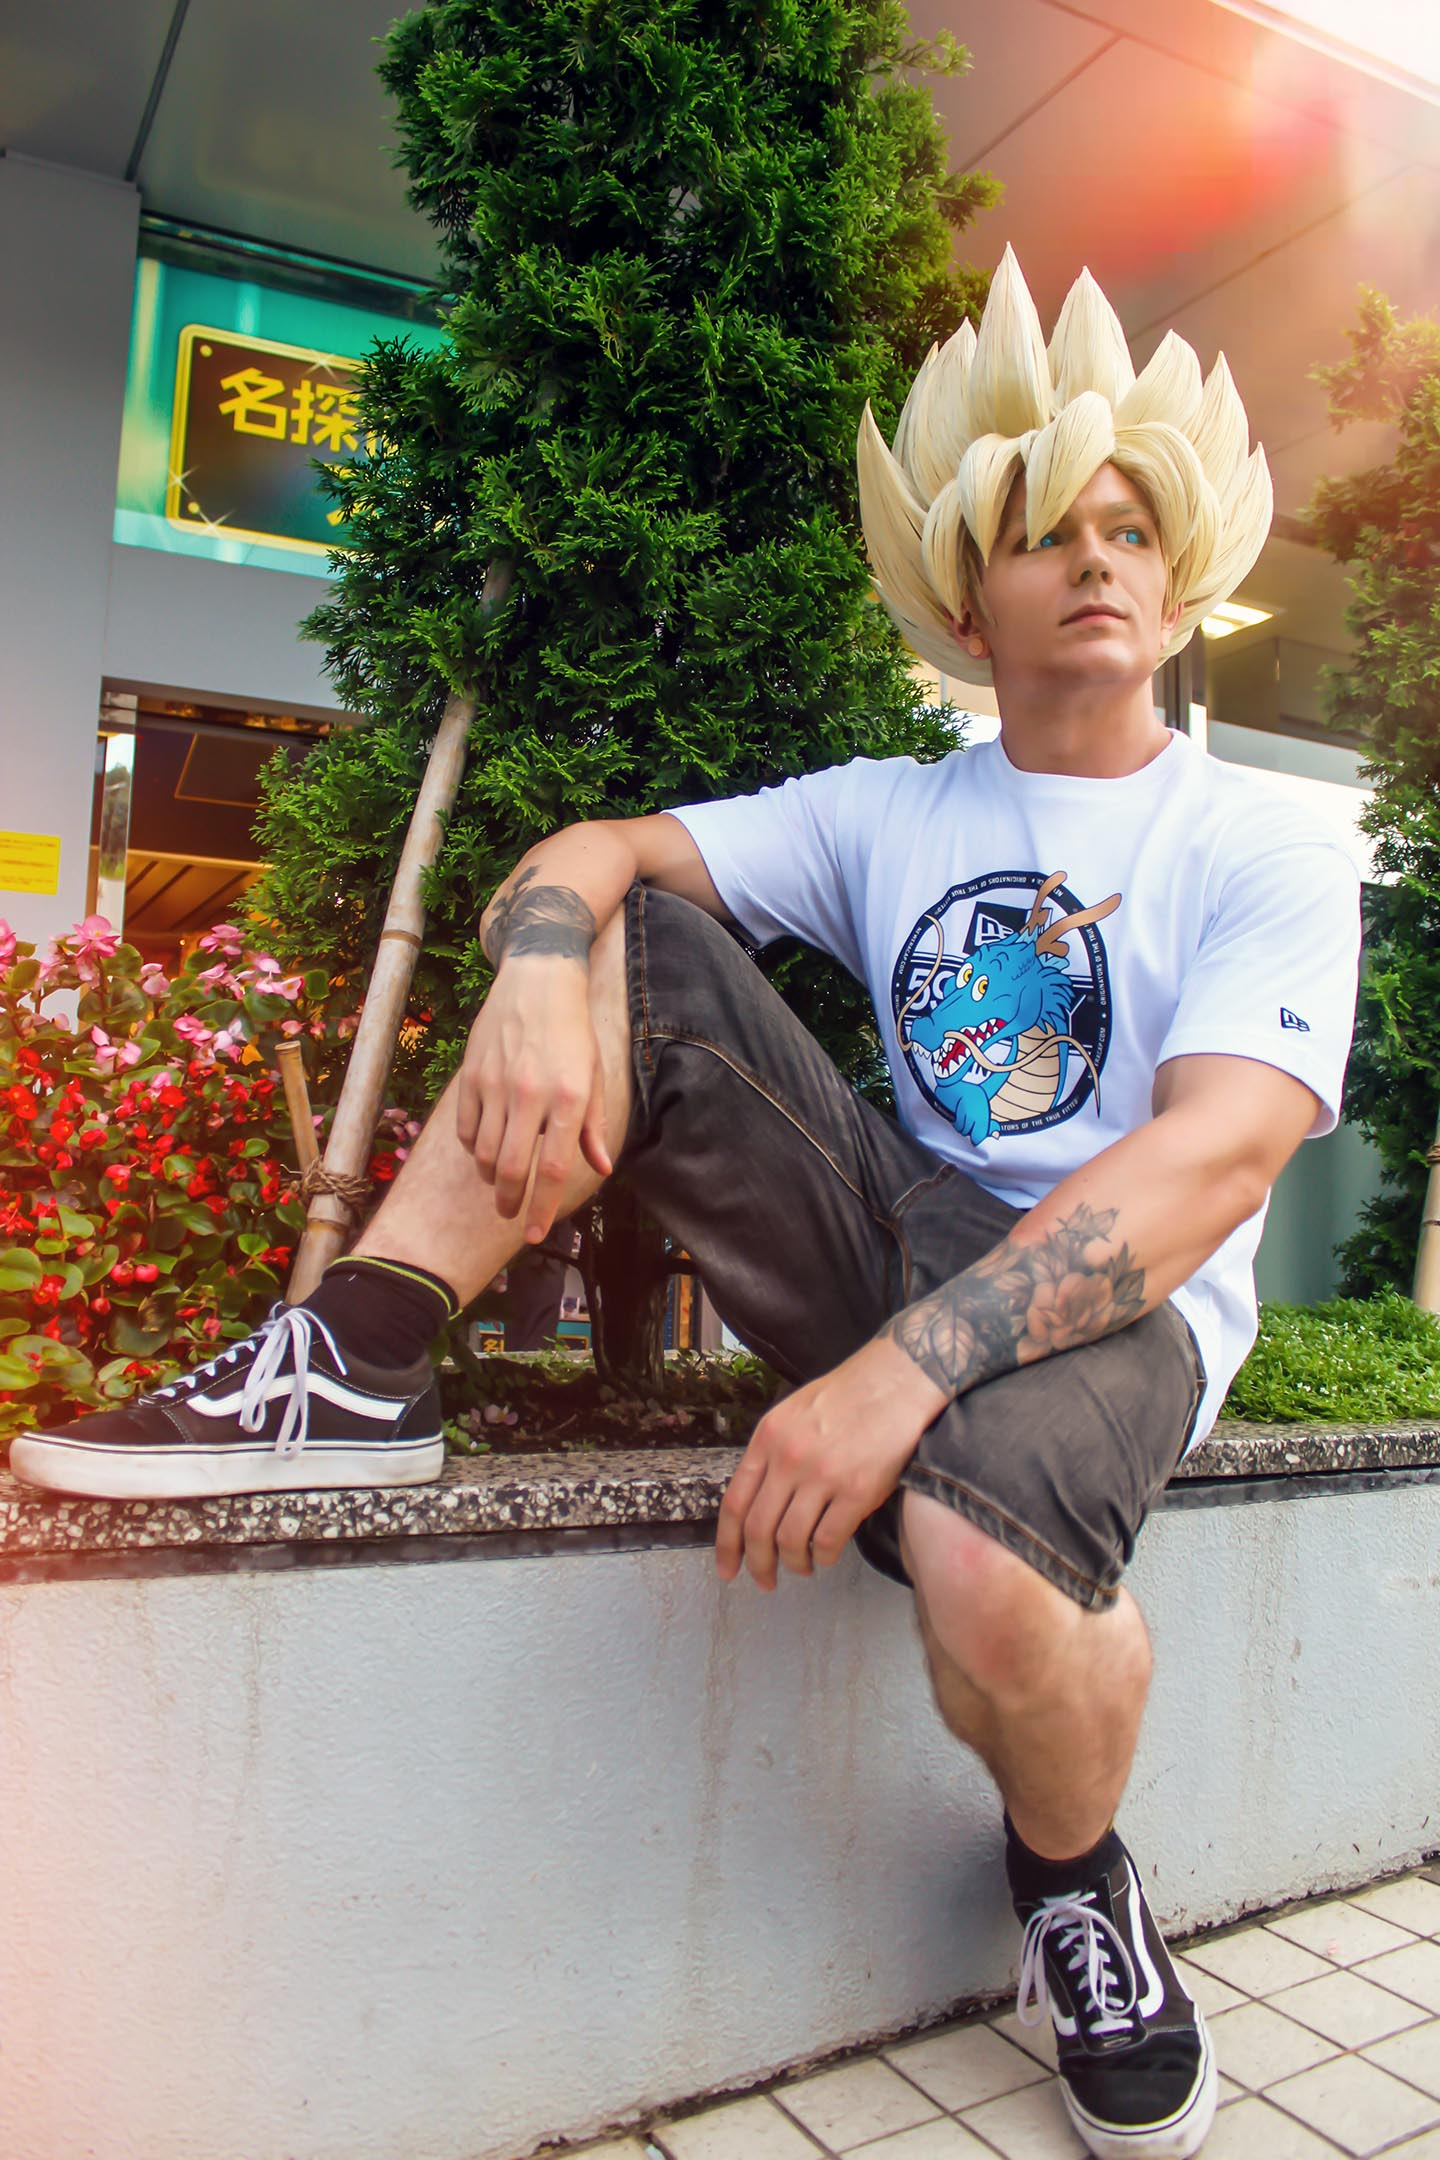 Goku cosplayer relaxing in Tokyo, dragonball x new era jump store collab